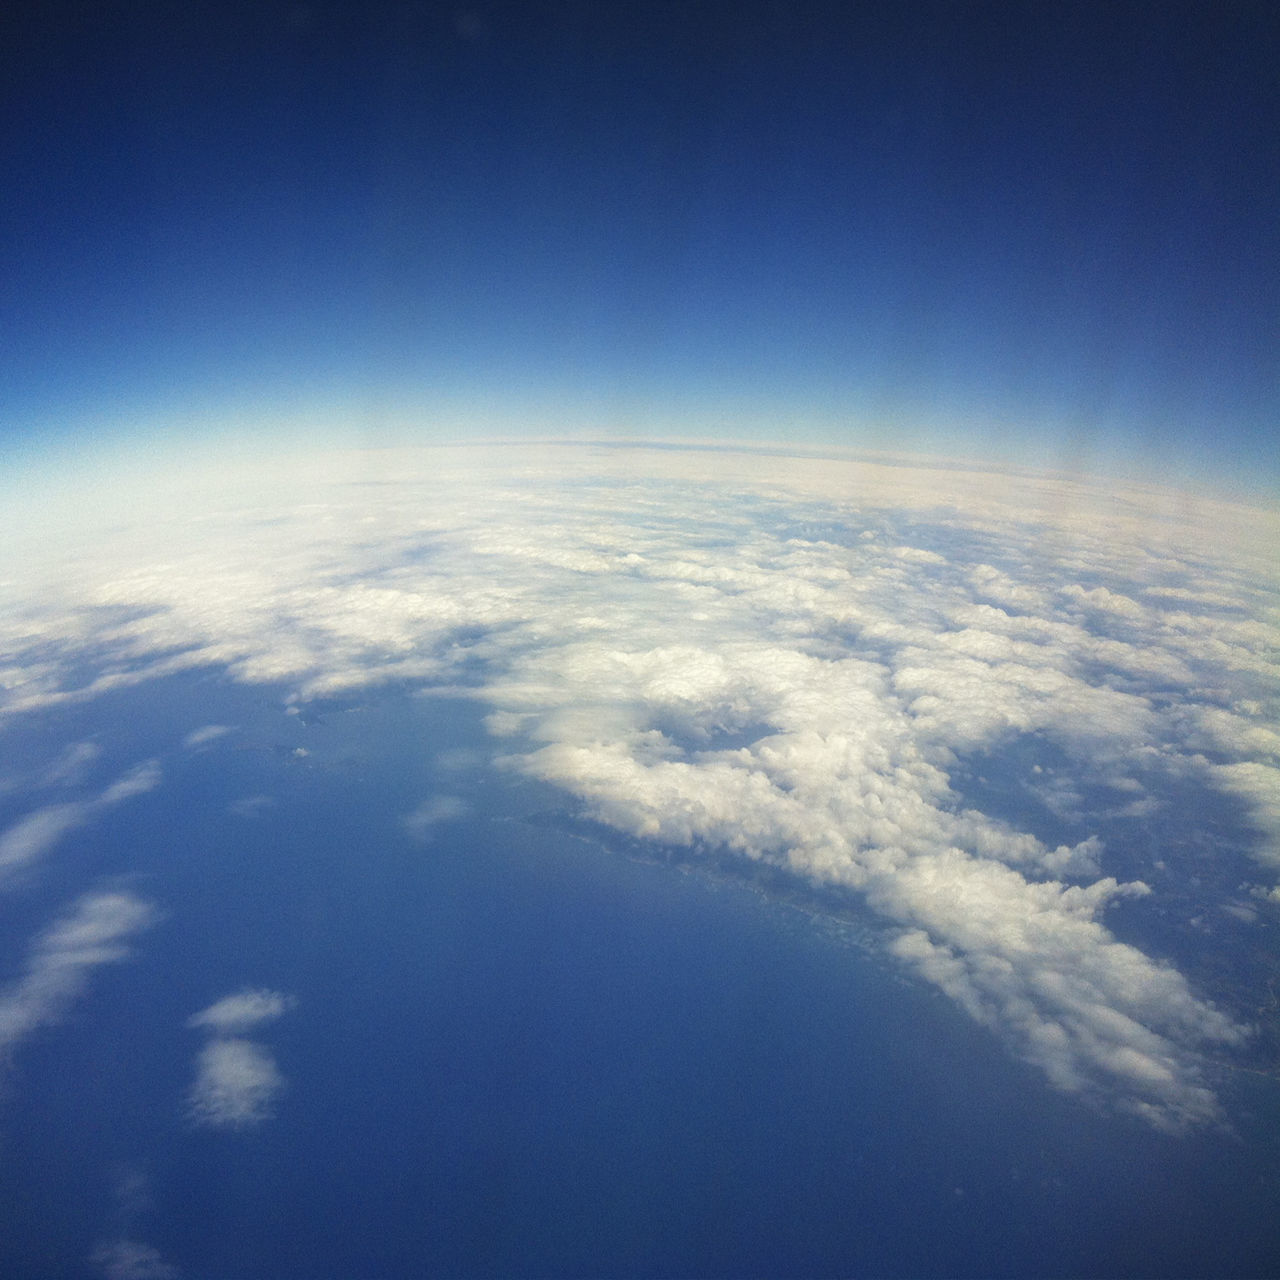 blue, sky, nature, cloud - sky, beauty in nature, scenics, no people, space, outdoors, tranquility, day, tranquil scene, planet earth, space exploration, astronomy, satellite view